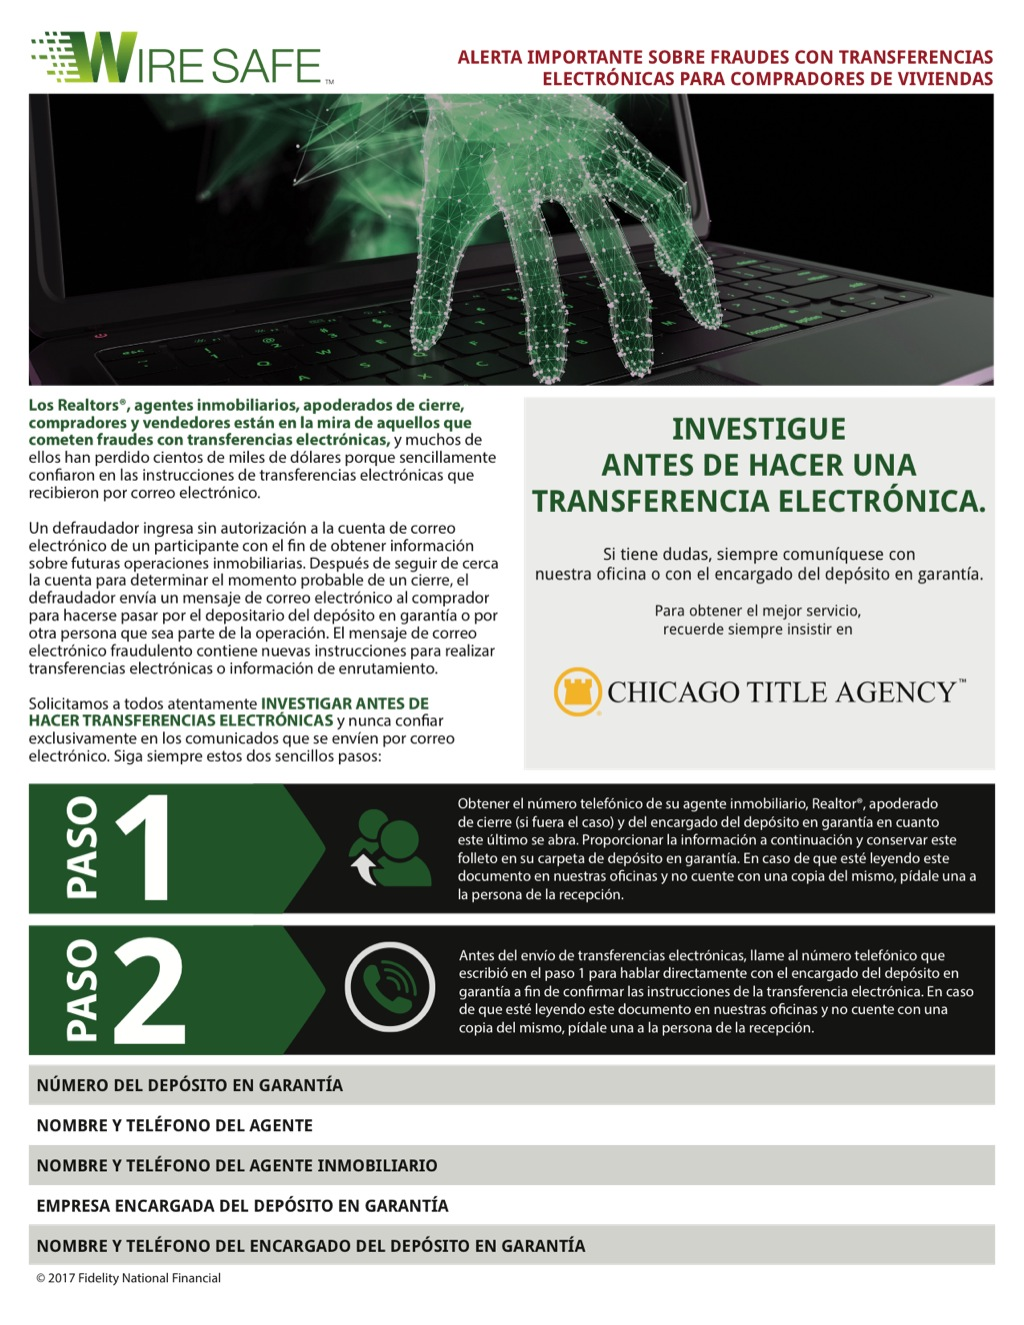 Corefact Wire Safe Buyer Flyer - Spanish - CTA